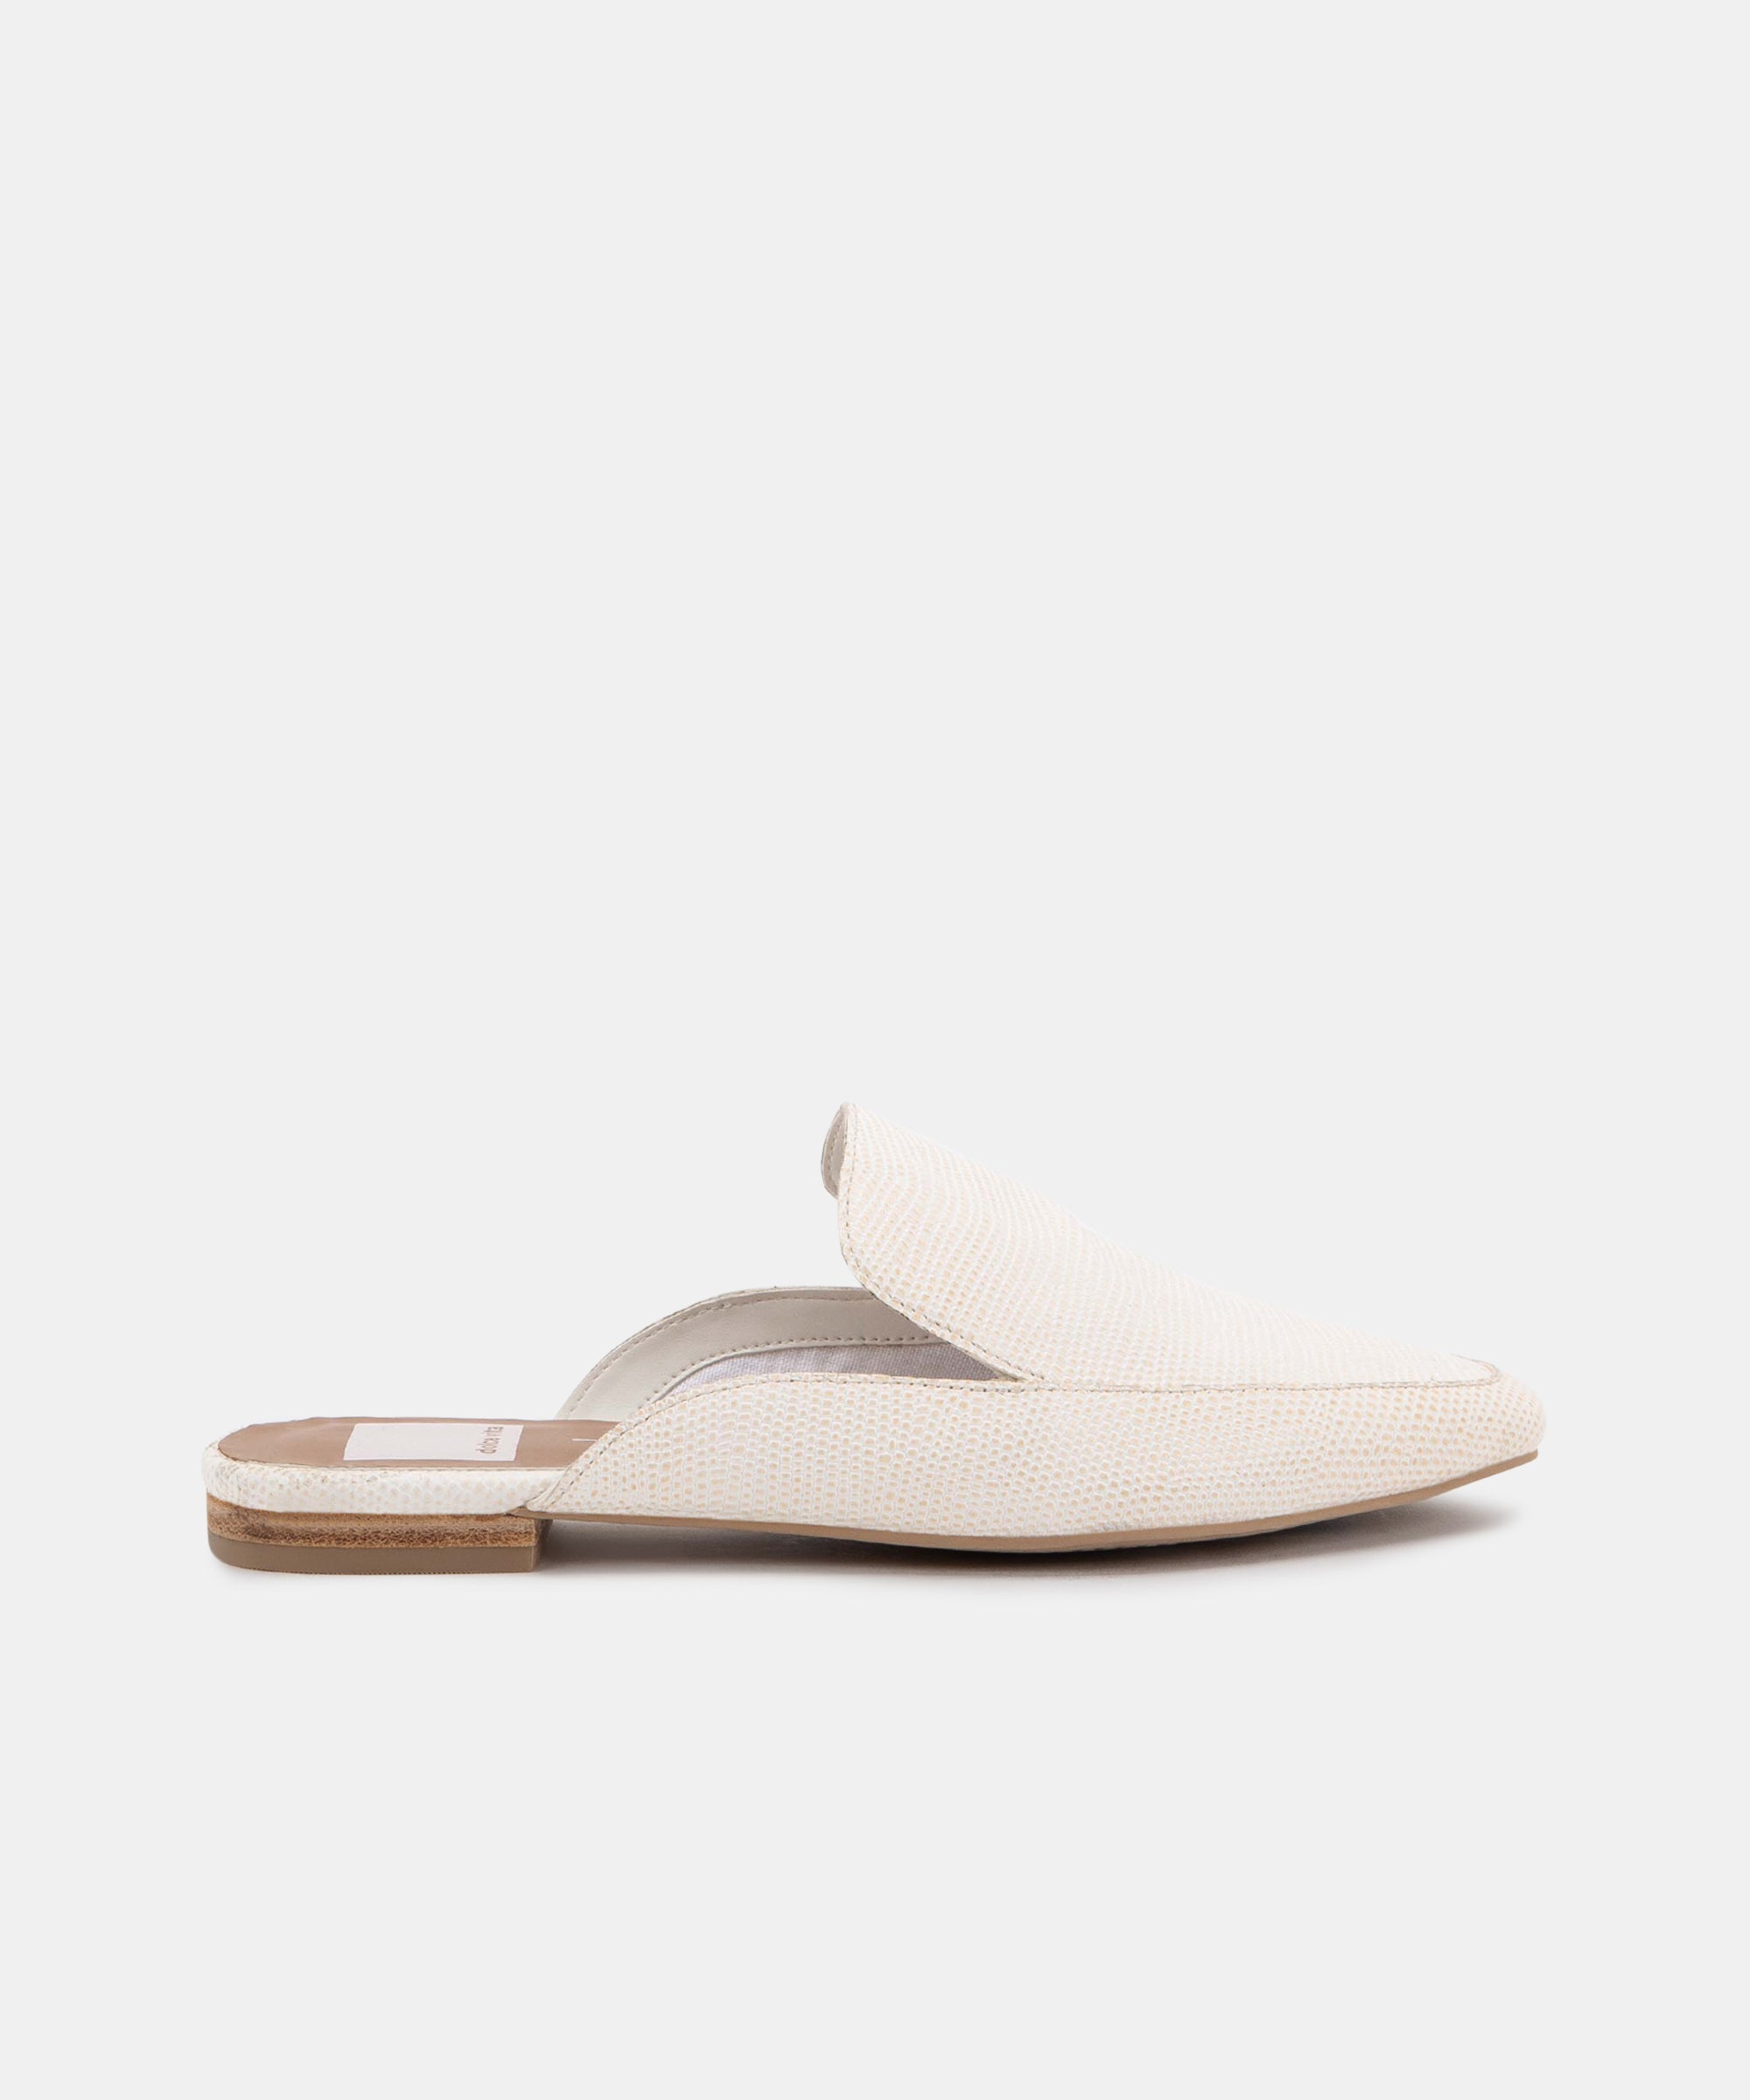 HALEE FLATS IN WHITE EMBOSSED LIZARD